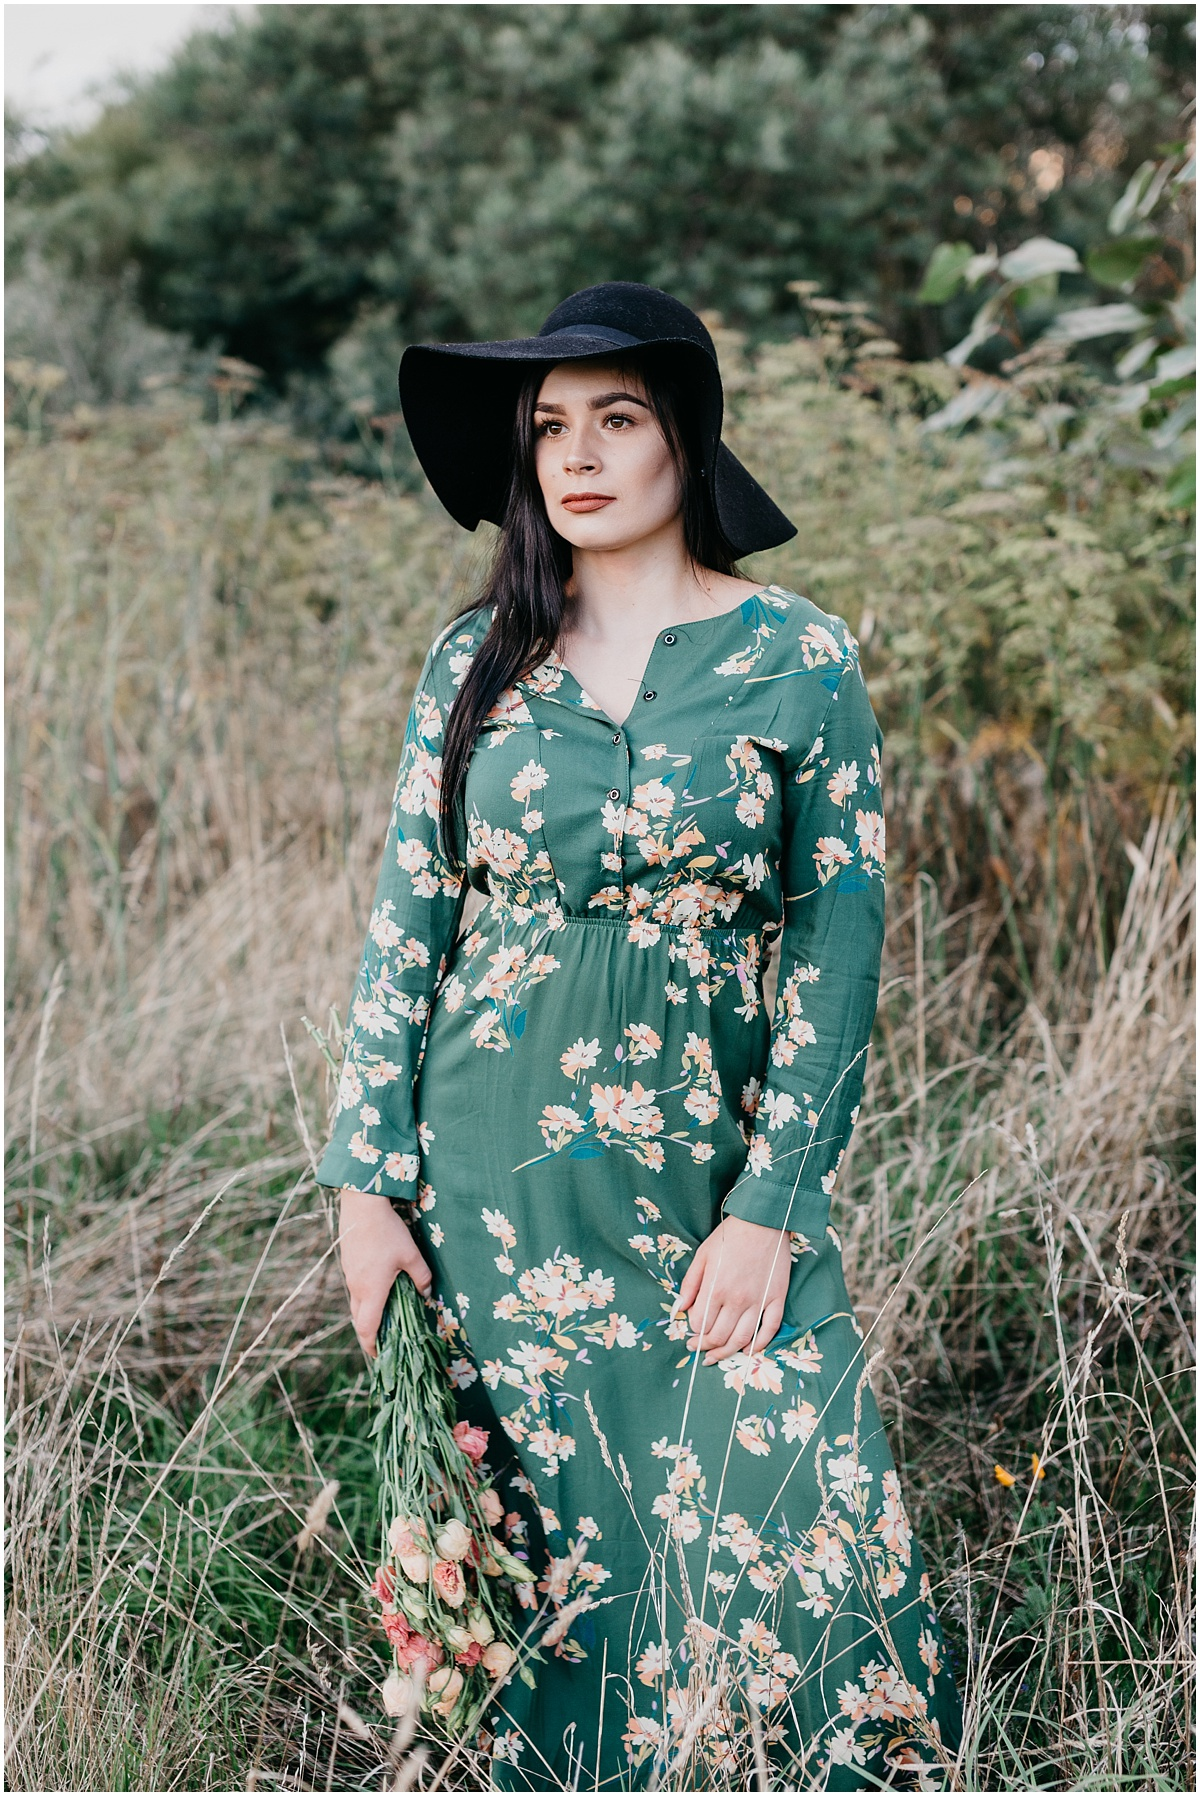 Girl with black hair and wearing black floppy hat